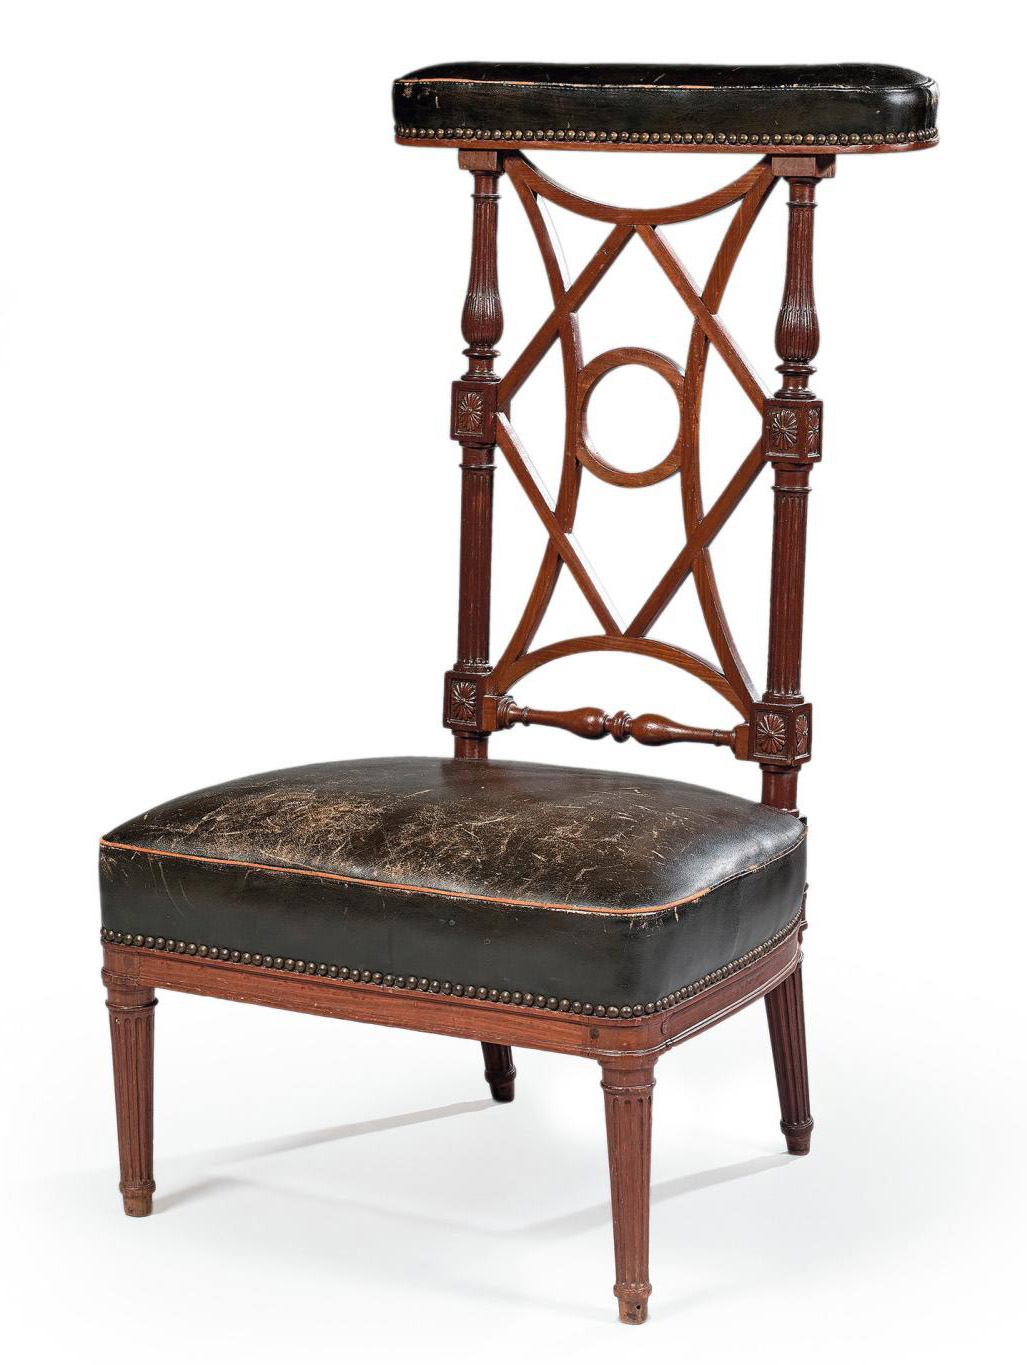 Louis XVI period, mahogany gaming chair from Cuba, with Jean Baptiste Boulard's stamp, 96 x 53 x 46.5 cm (37.8 x 20.8 x 18.3 in.). Paris,